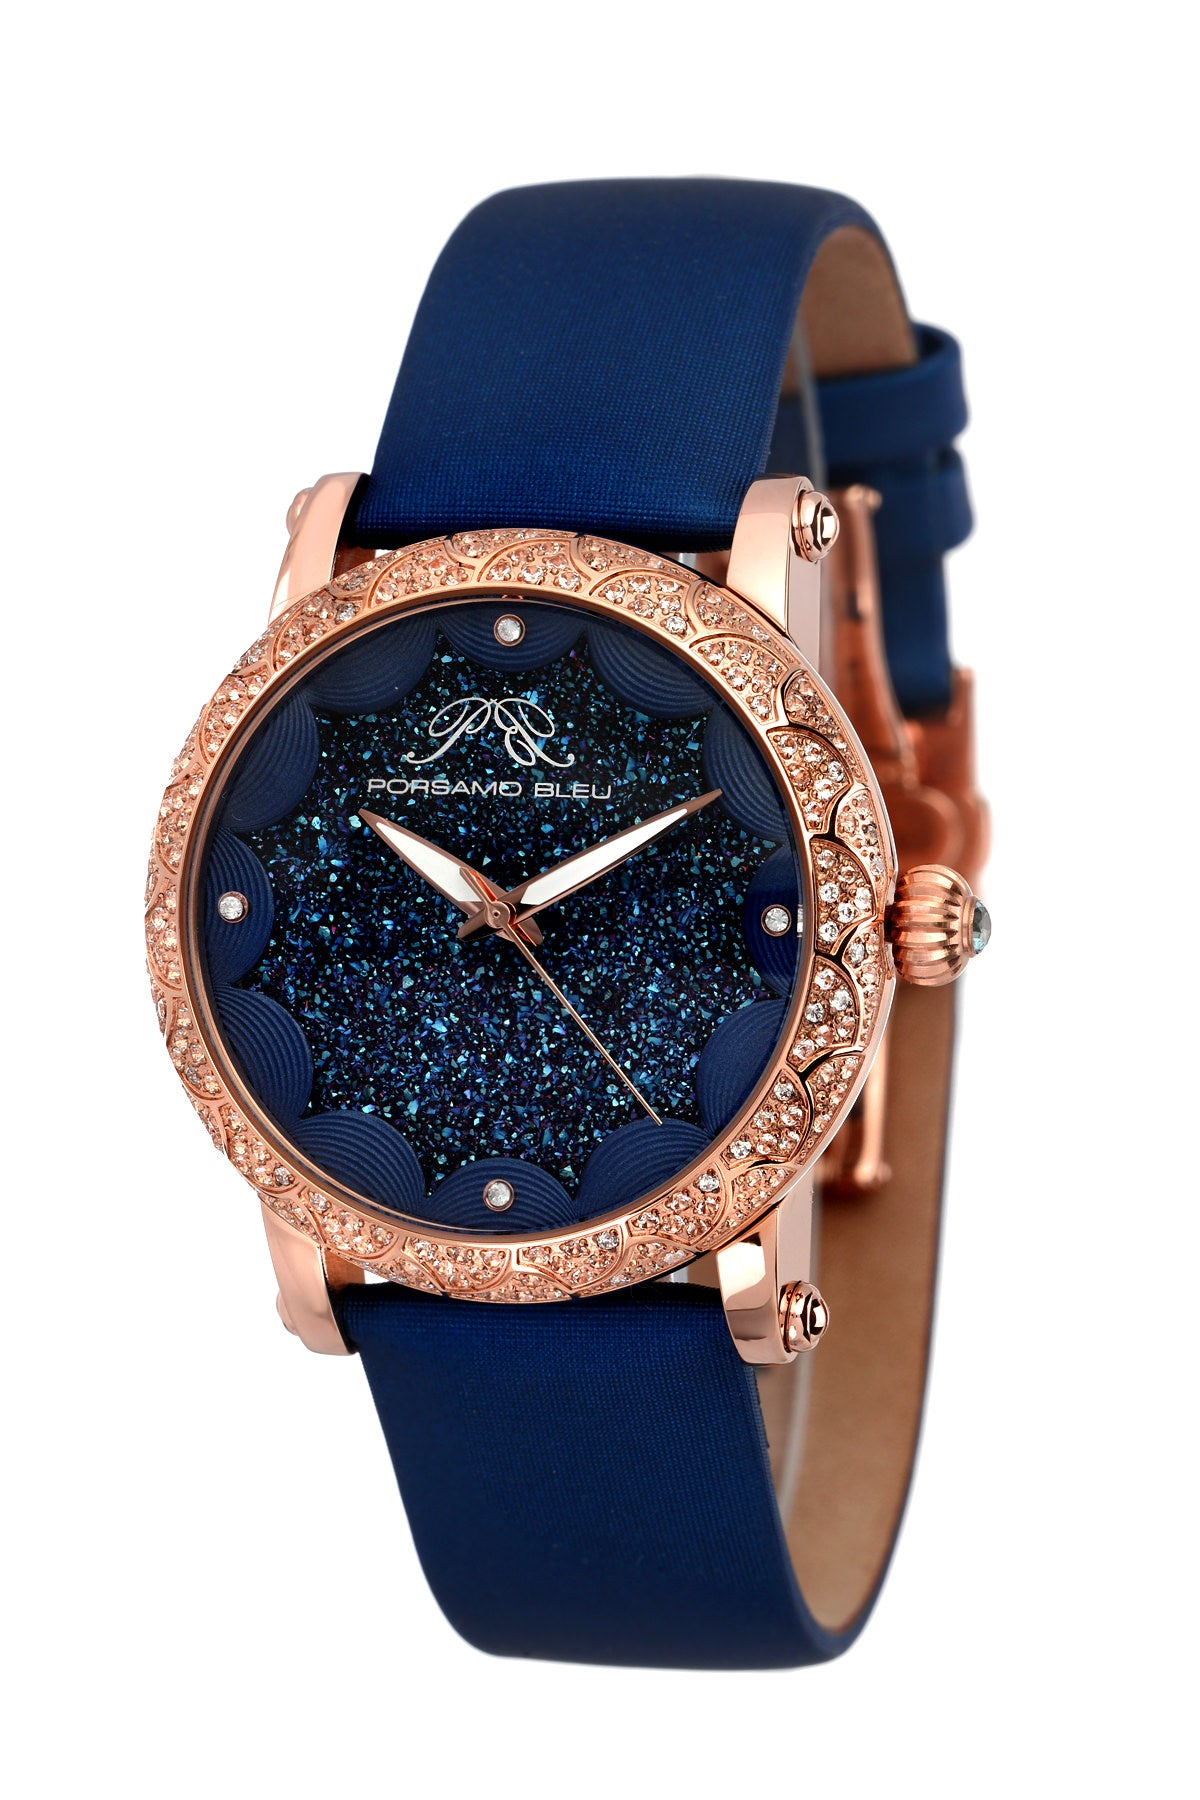 Porsamo Bleu Genevieve luxury topaz women's watch, satin leather watch, rose, blue 682CGEL